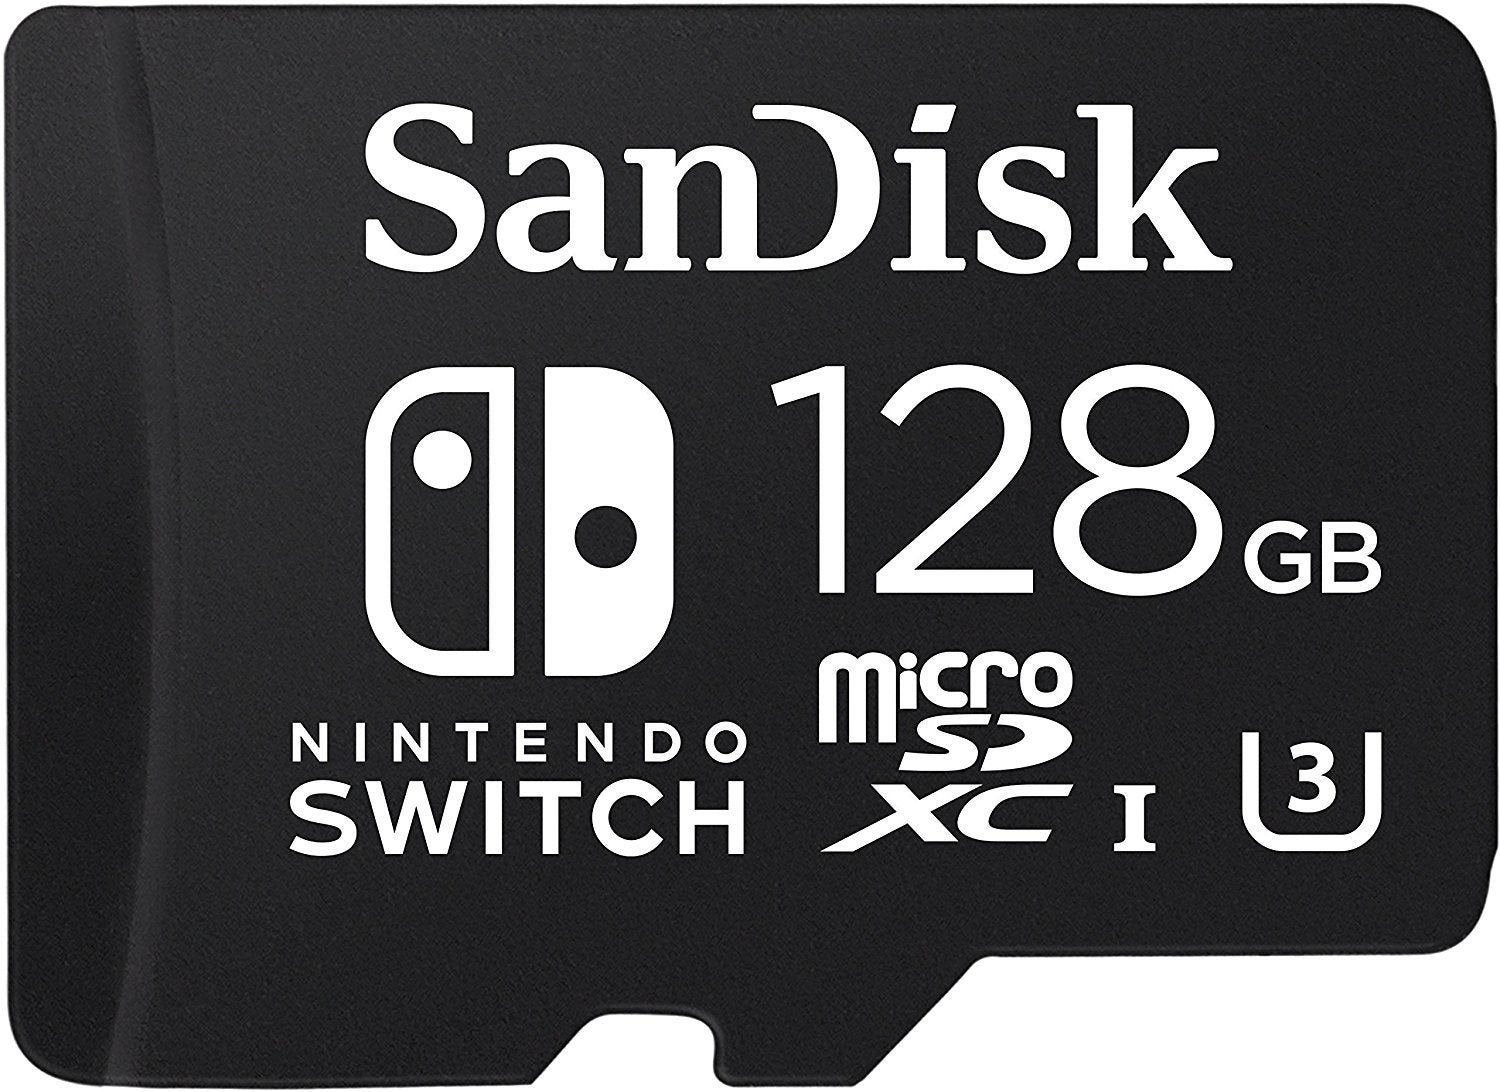 SanDisk - 128GB/64GB  microSDXC Memory Card for Nintendo Switch - USED